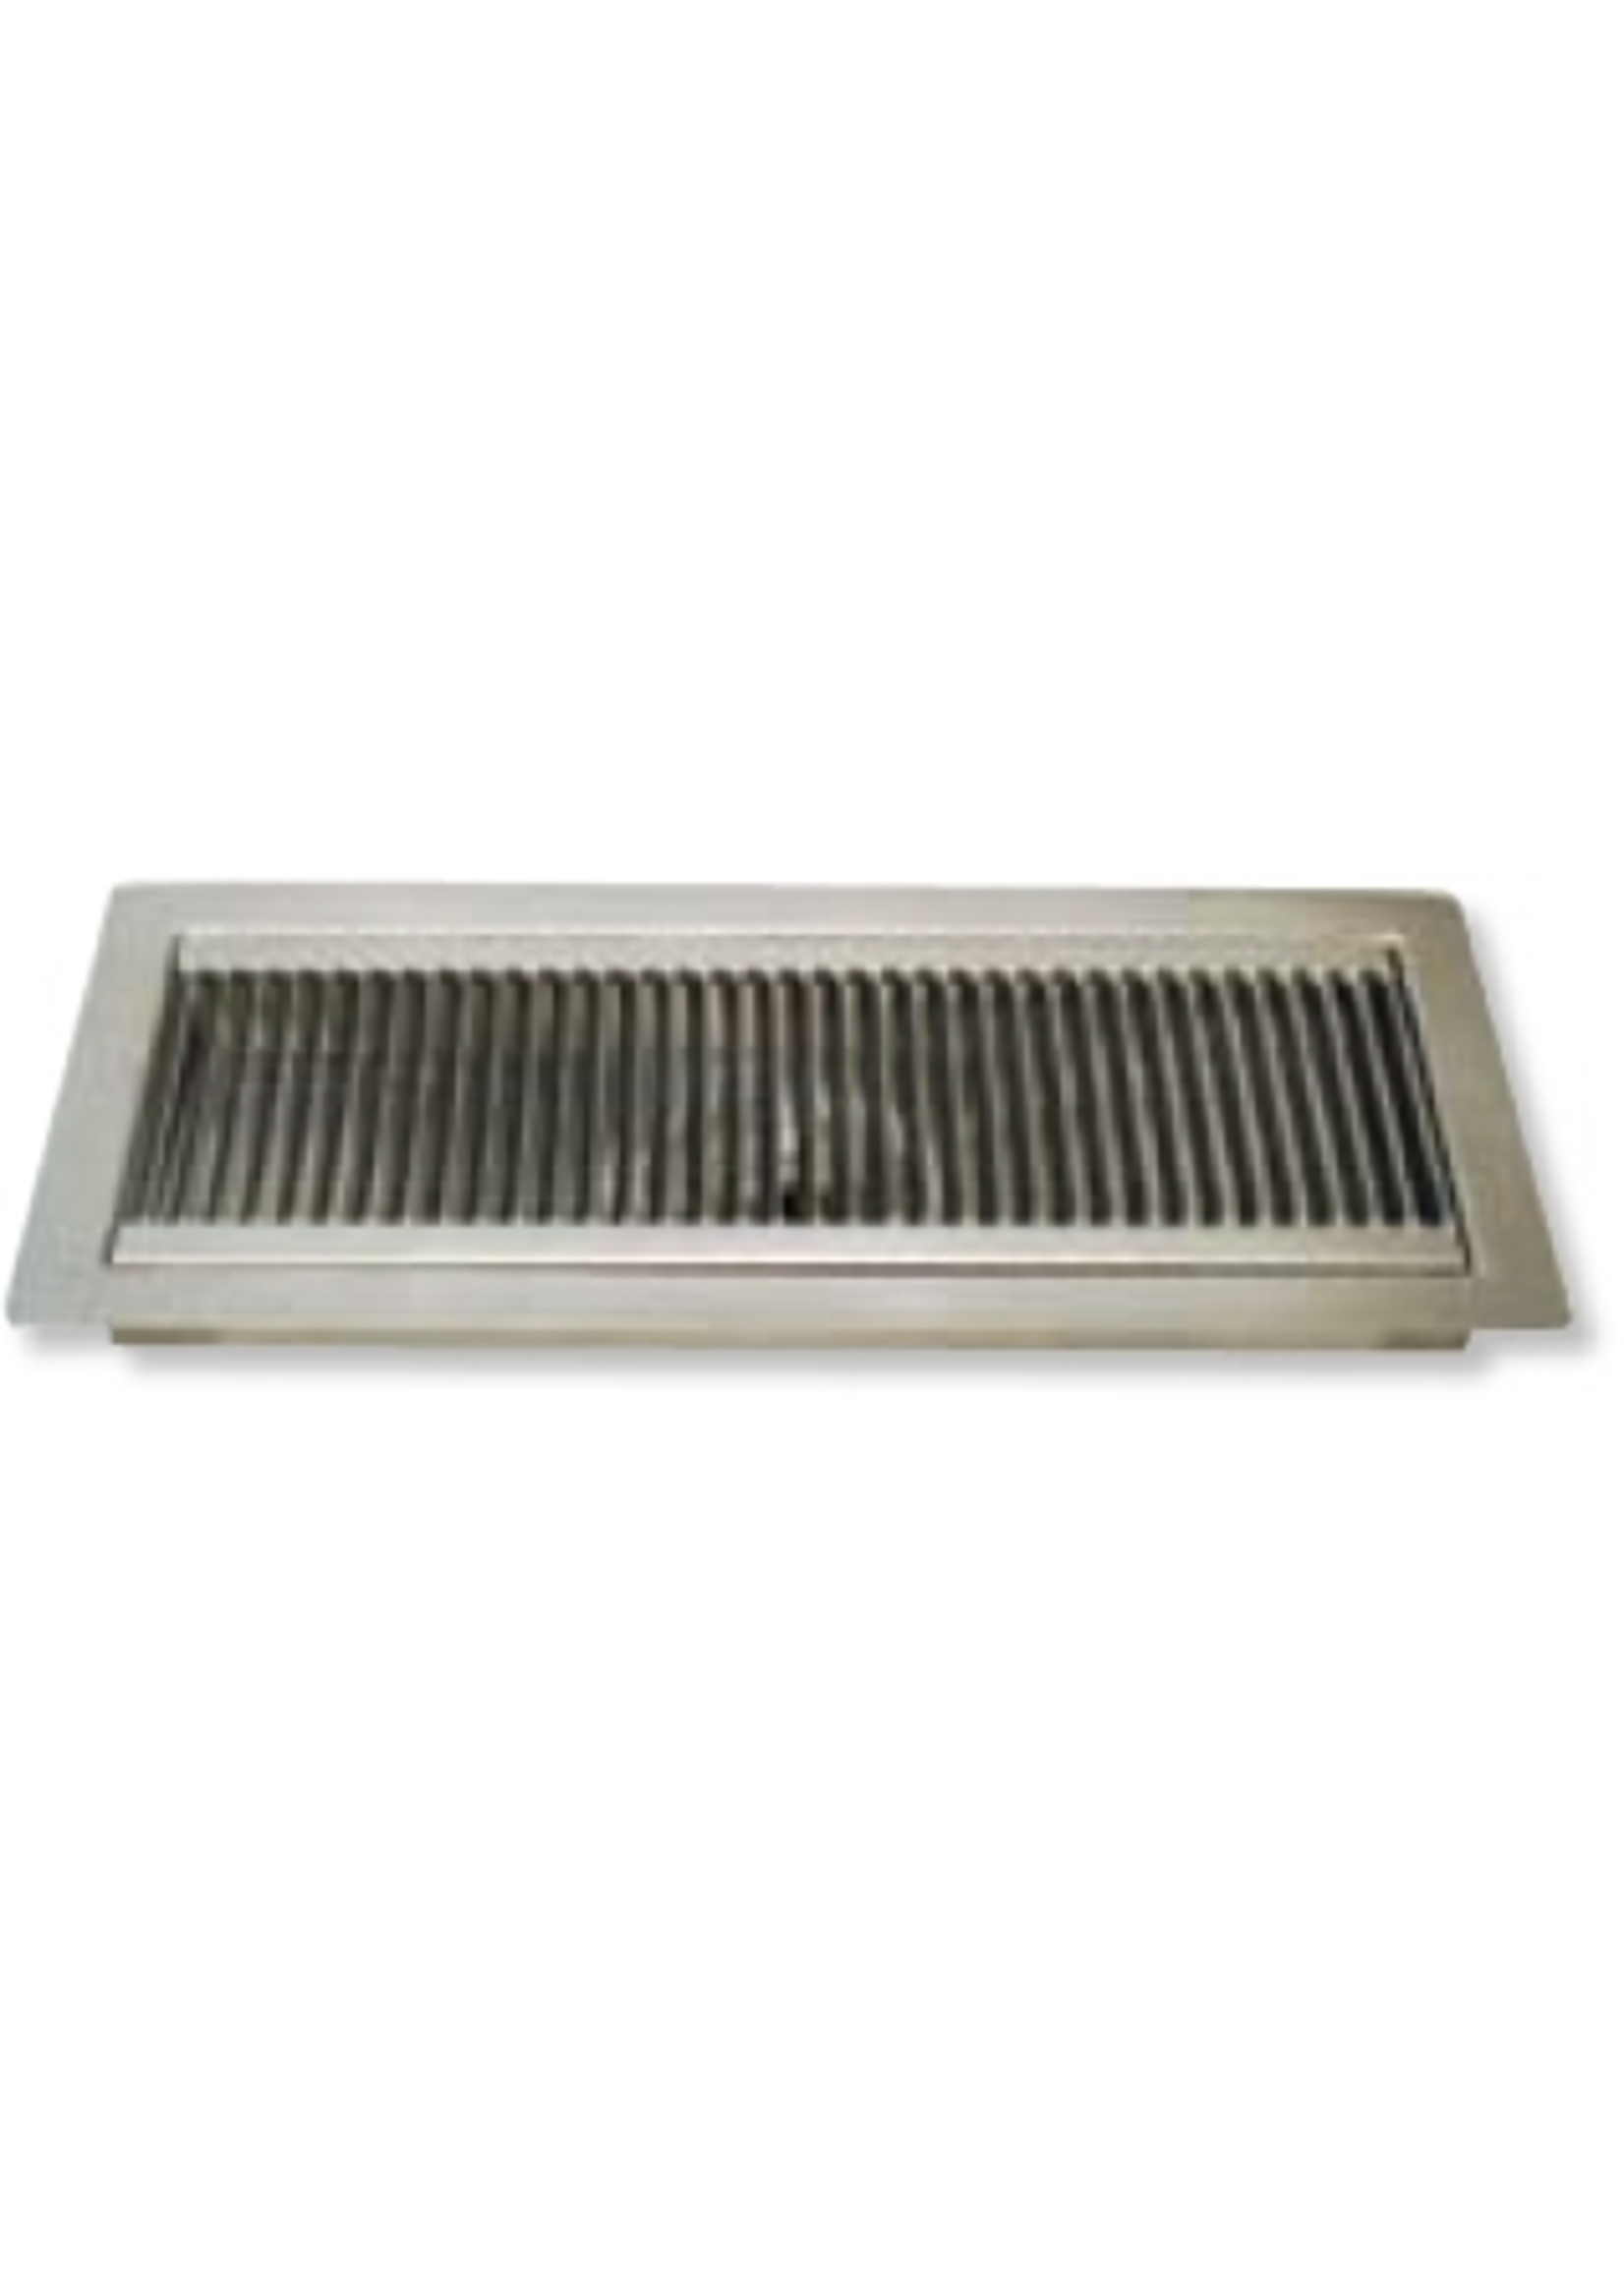 """Kegging Flush Mount Stainless Steel Drip Tray - 12"""" x 5.25"""" x .75"""" Flanged"""